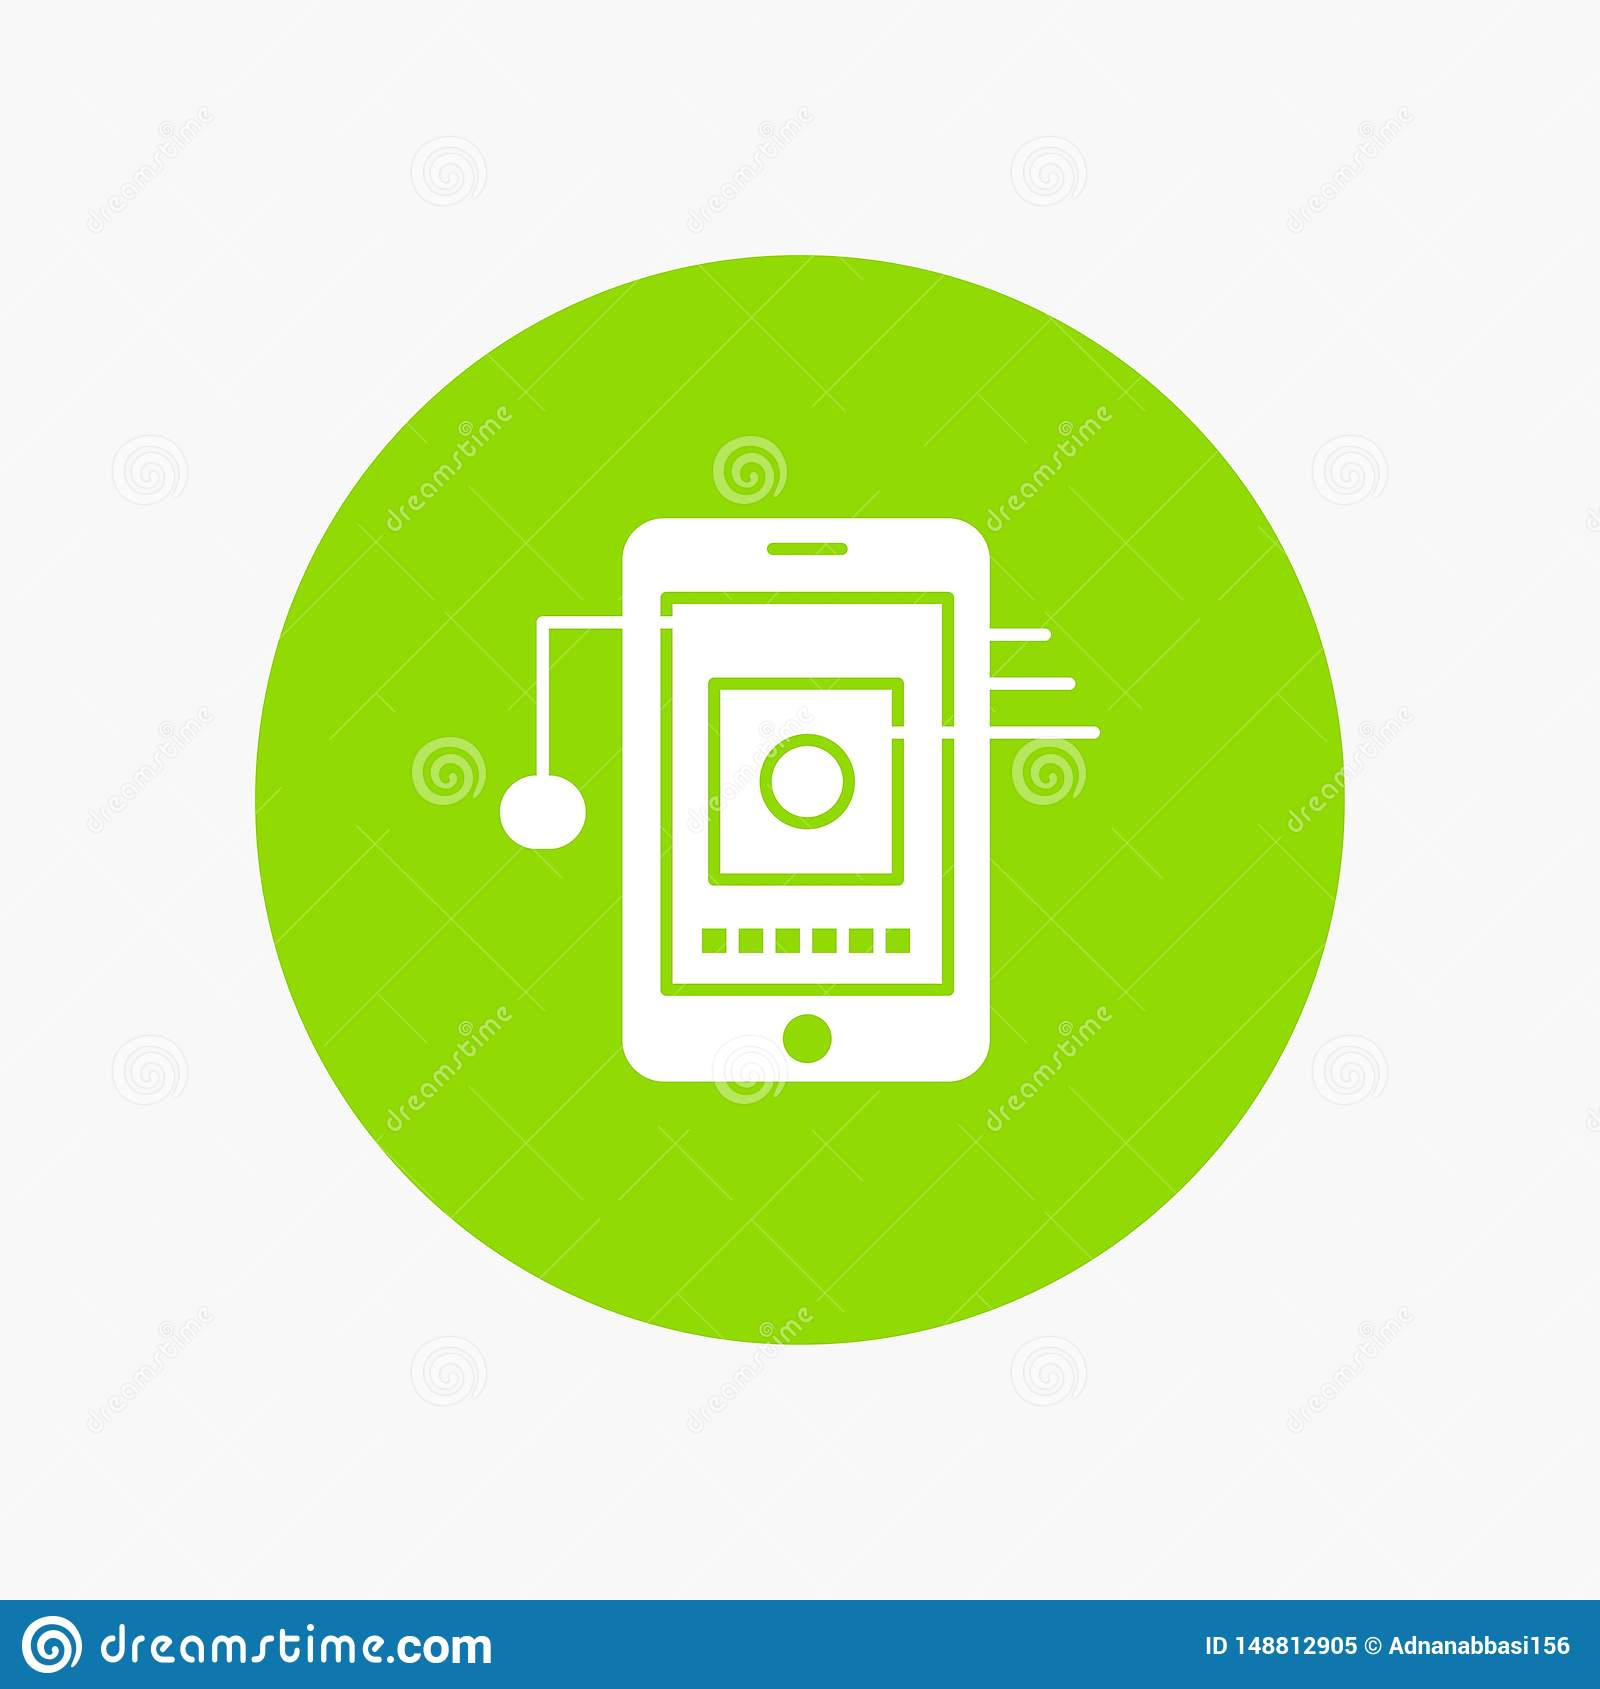 Mobile, Cell, Hardware, Network white glyph icon